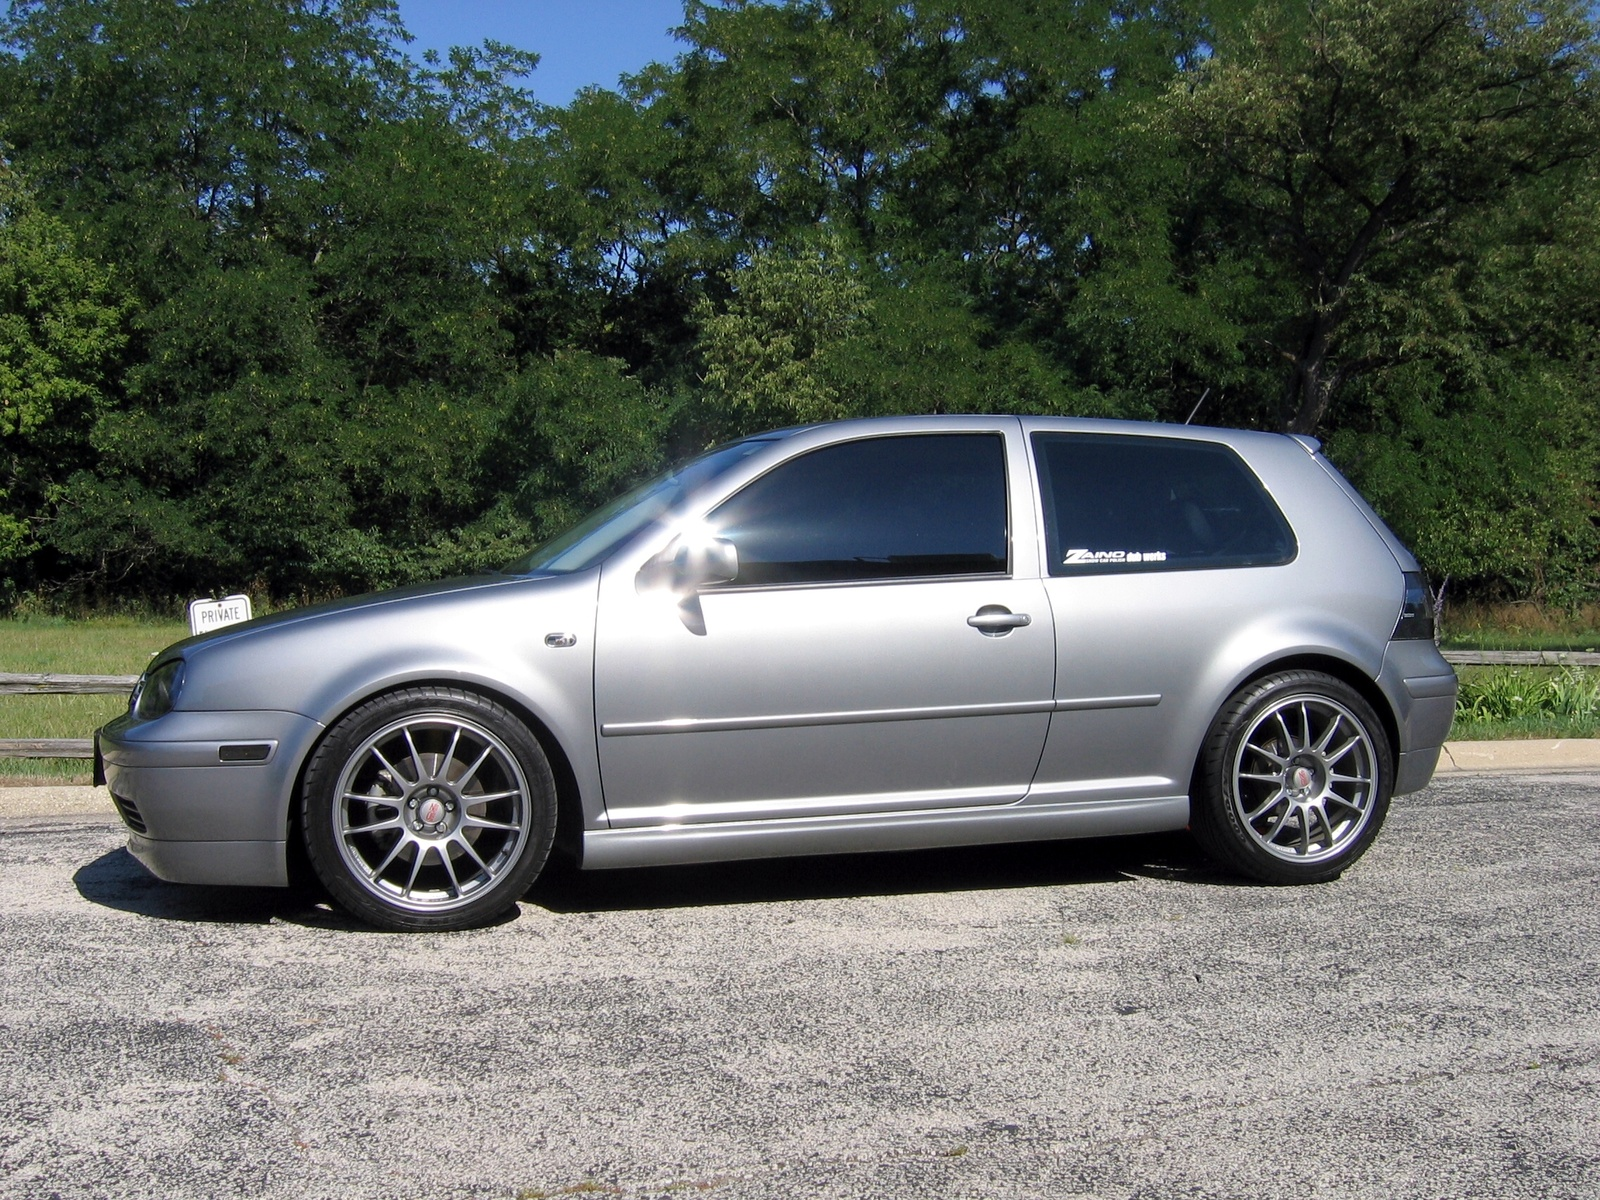 hight resolution of 2003 volkswagen gti 1 8t picture exterior